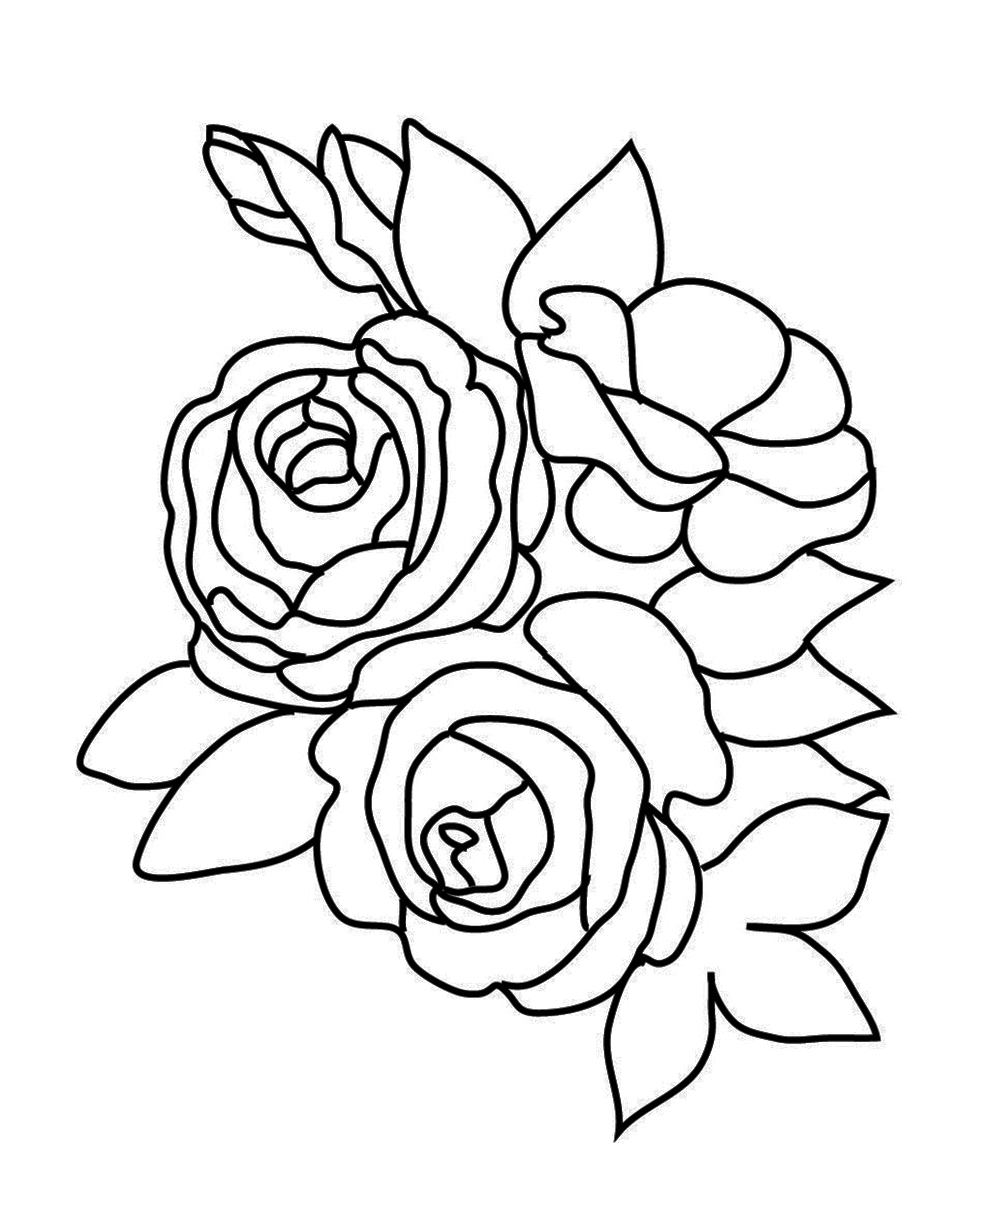 rose coloring book page roses coloring pages getcoloringpagescom book coloring page rose